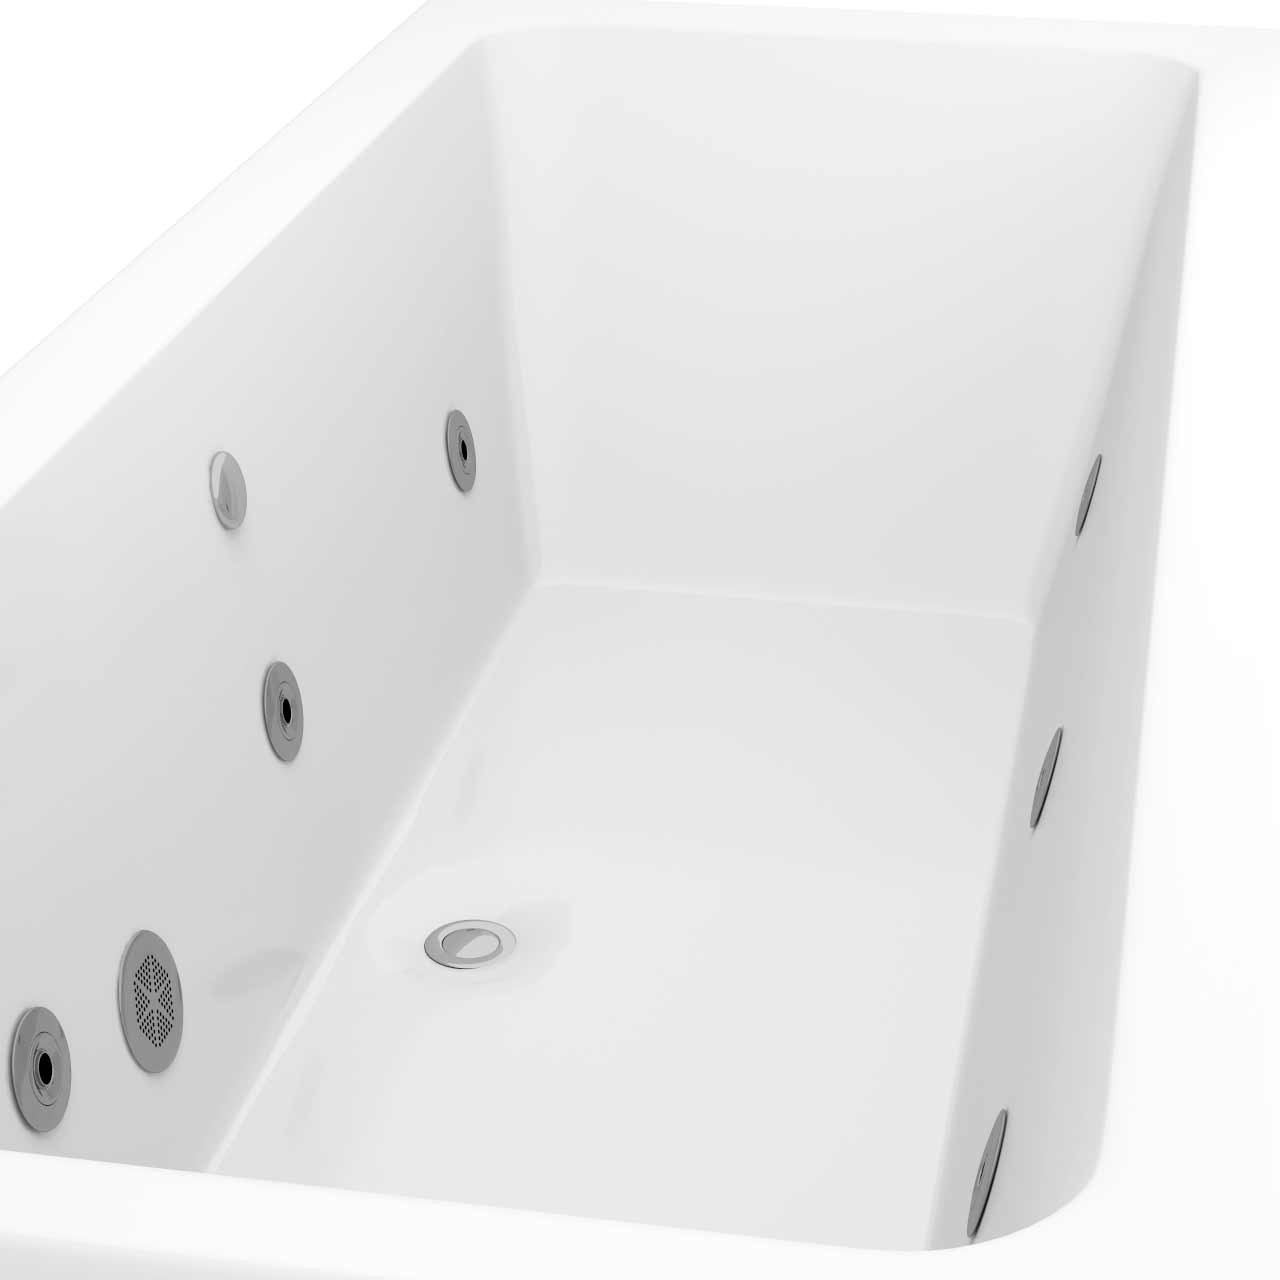 Square Centre Tap 6 Jet Chrome Flat Jet Whirlpool Bath 1700x700mm